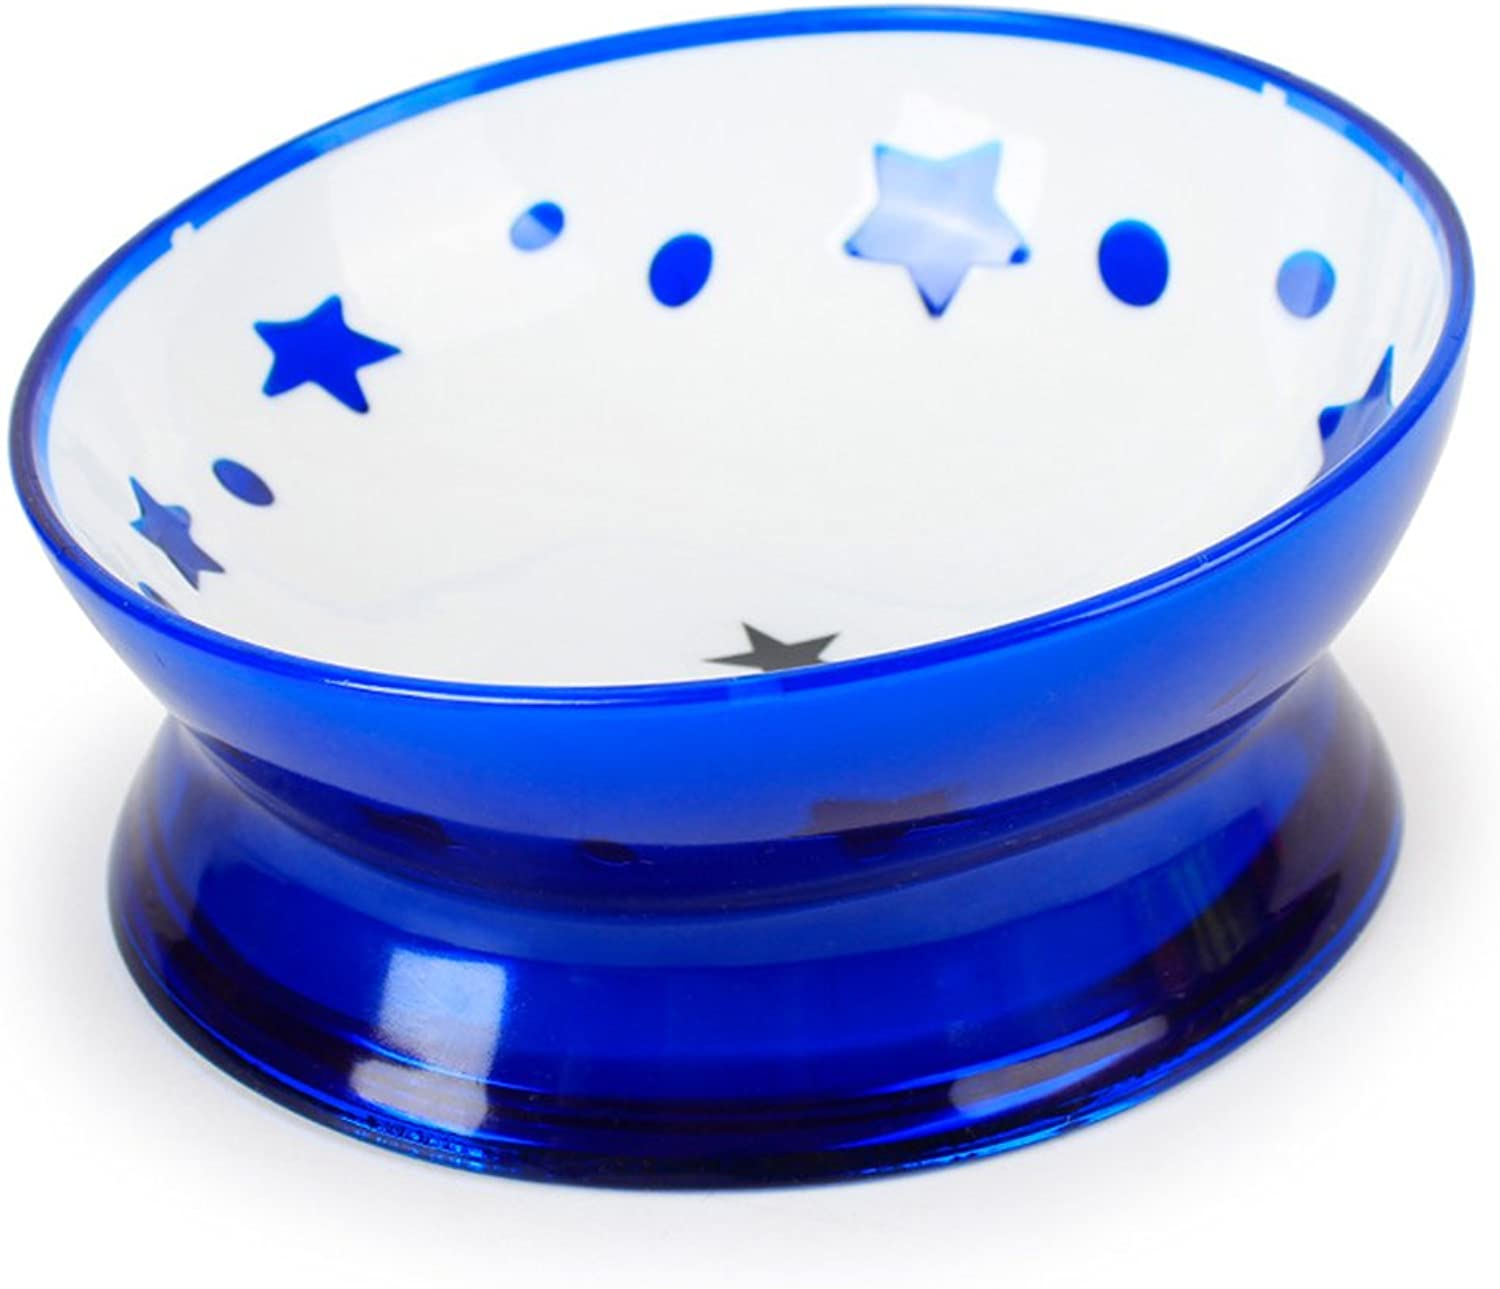 Dog Bowl Cat Bowl Slow Down Feed Dog Cat Feeding Bowl Pet Tilting Bowl Accord With Pet Food Habit BL017